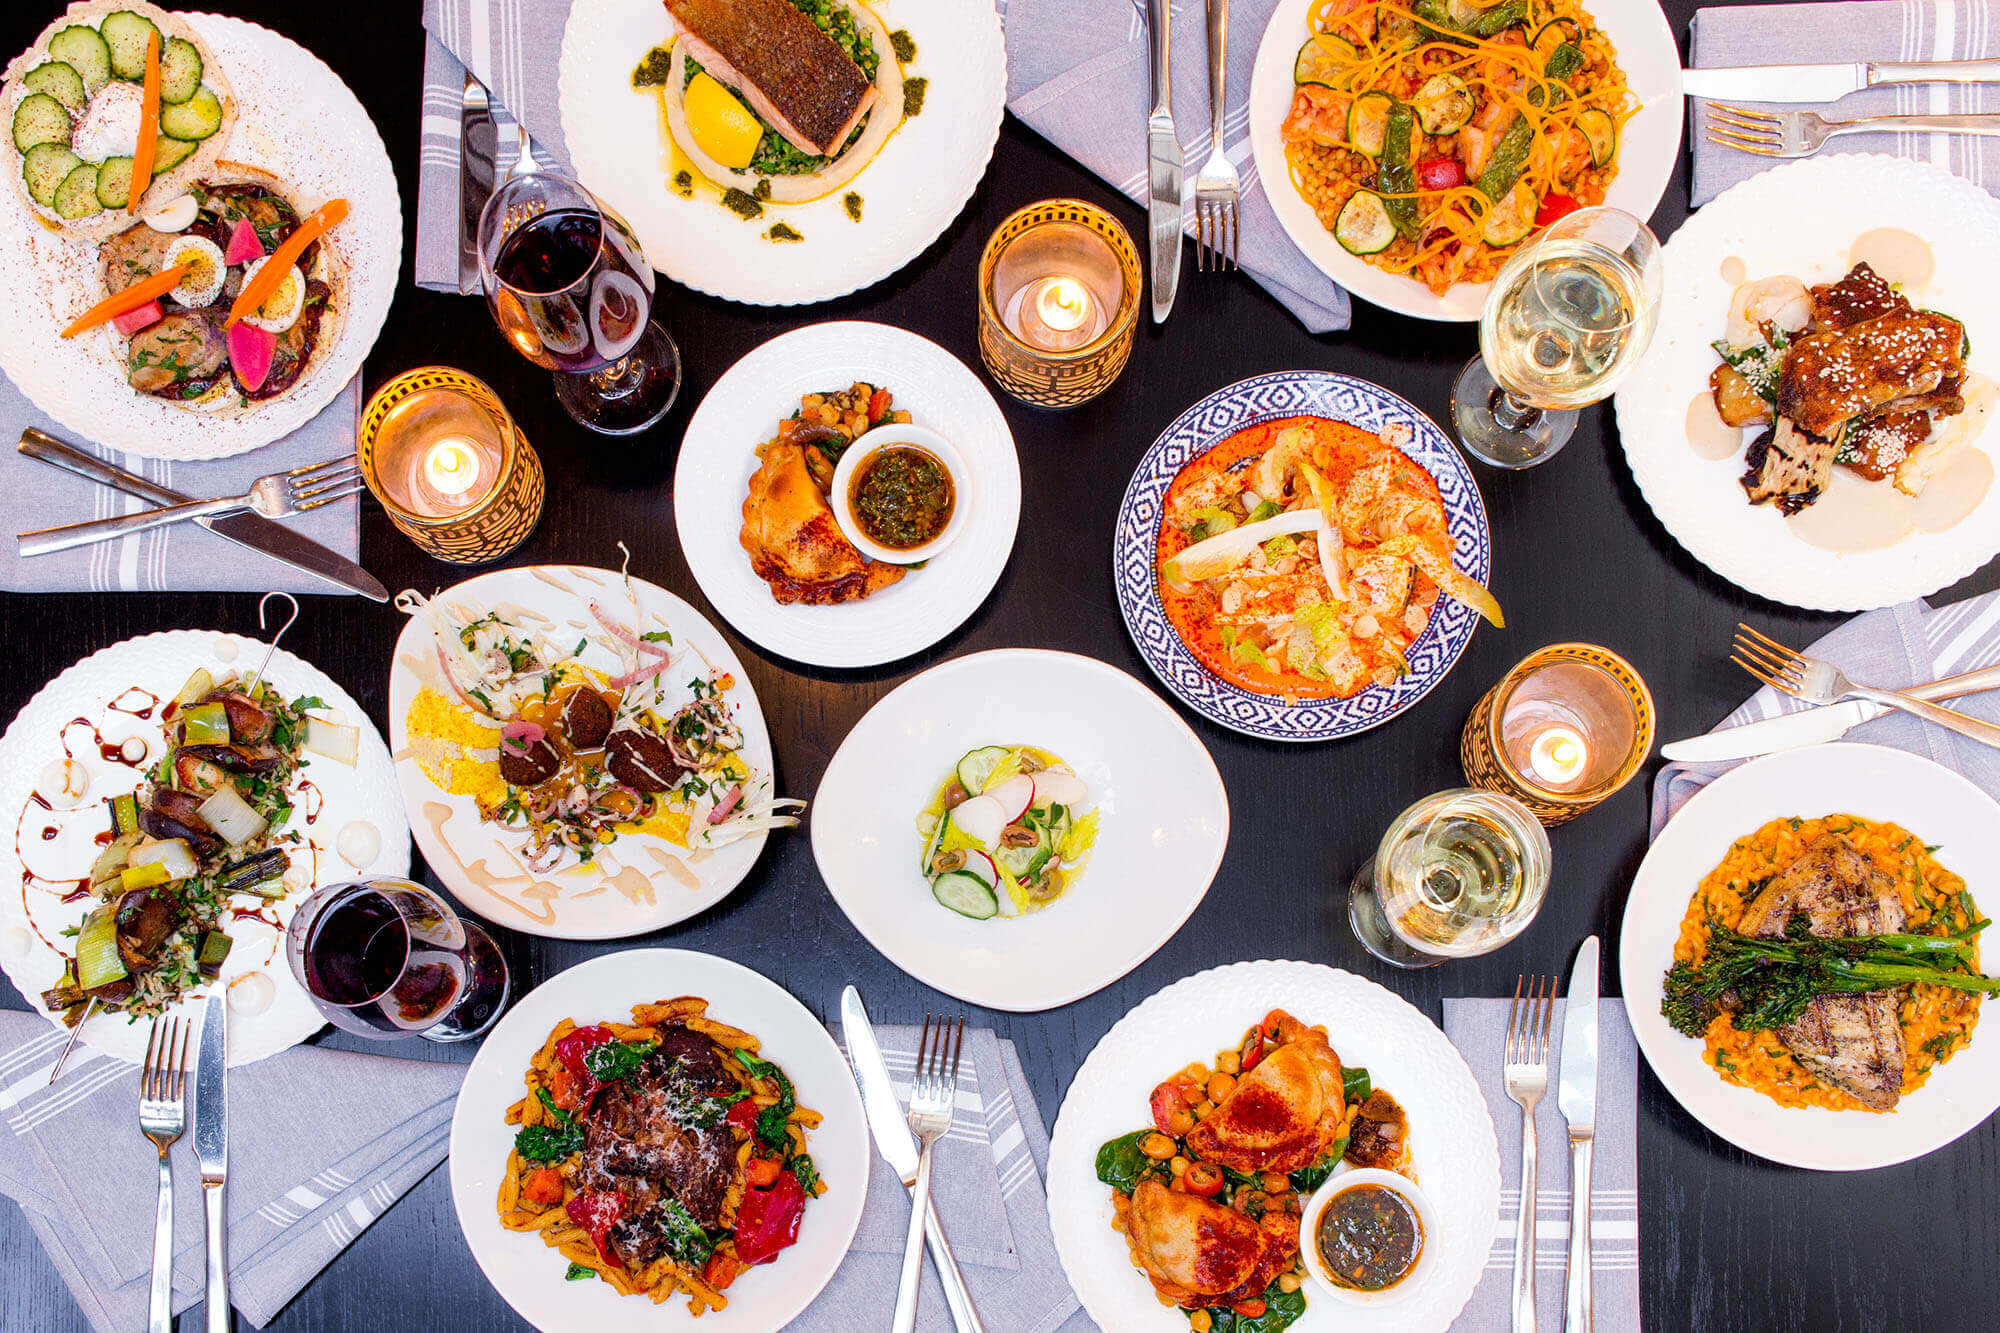 Overhead flatlay of Babel's Winterlicious offerings